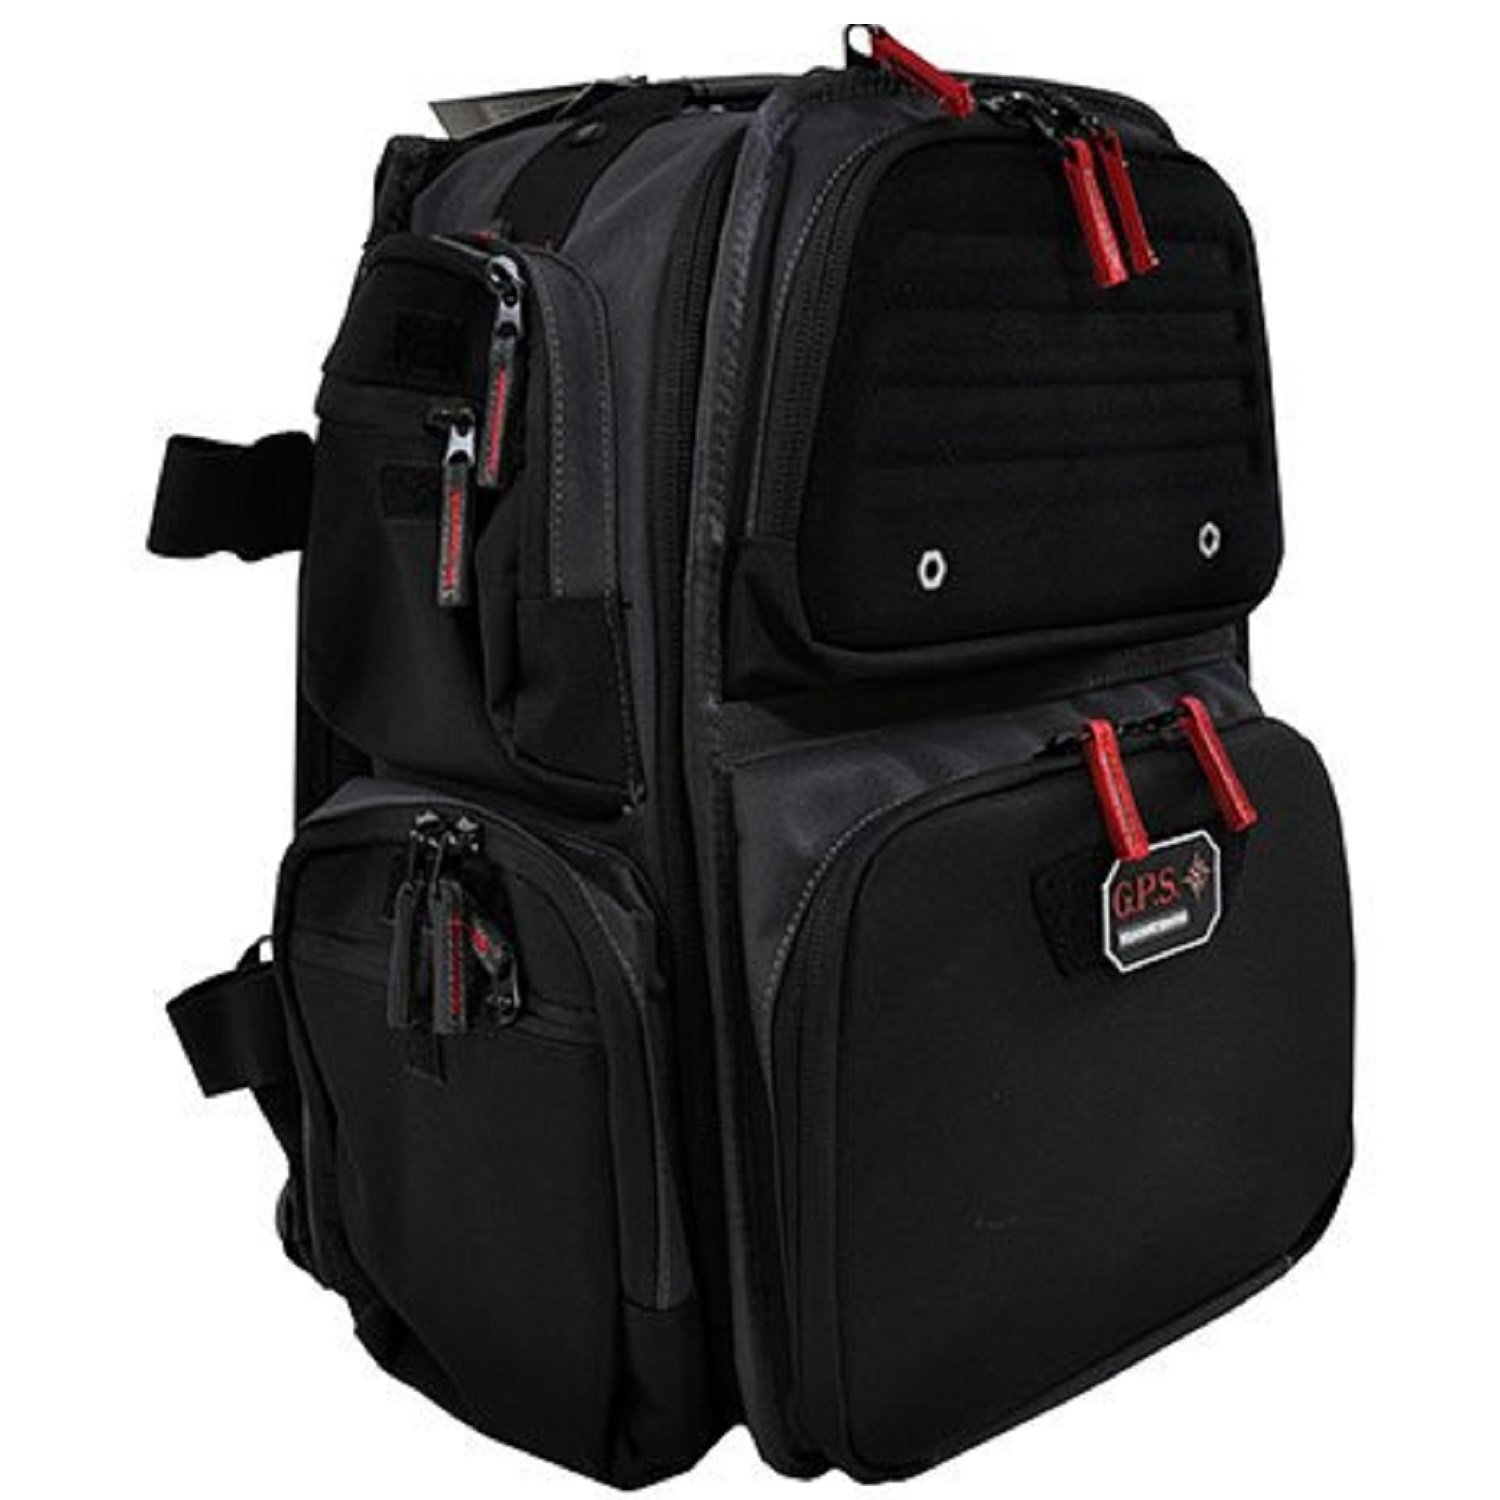 G.P.S. The Executive Backpack with Crackle for 5 Handguns, Gray by G.P.S.